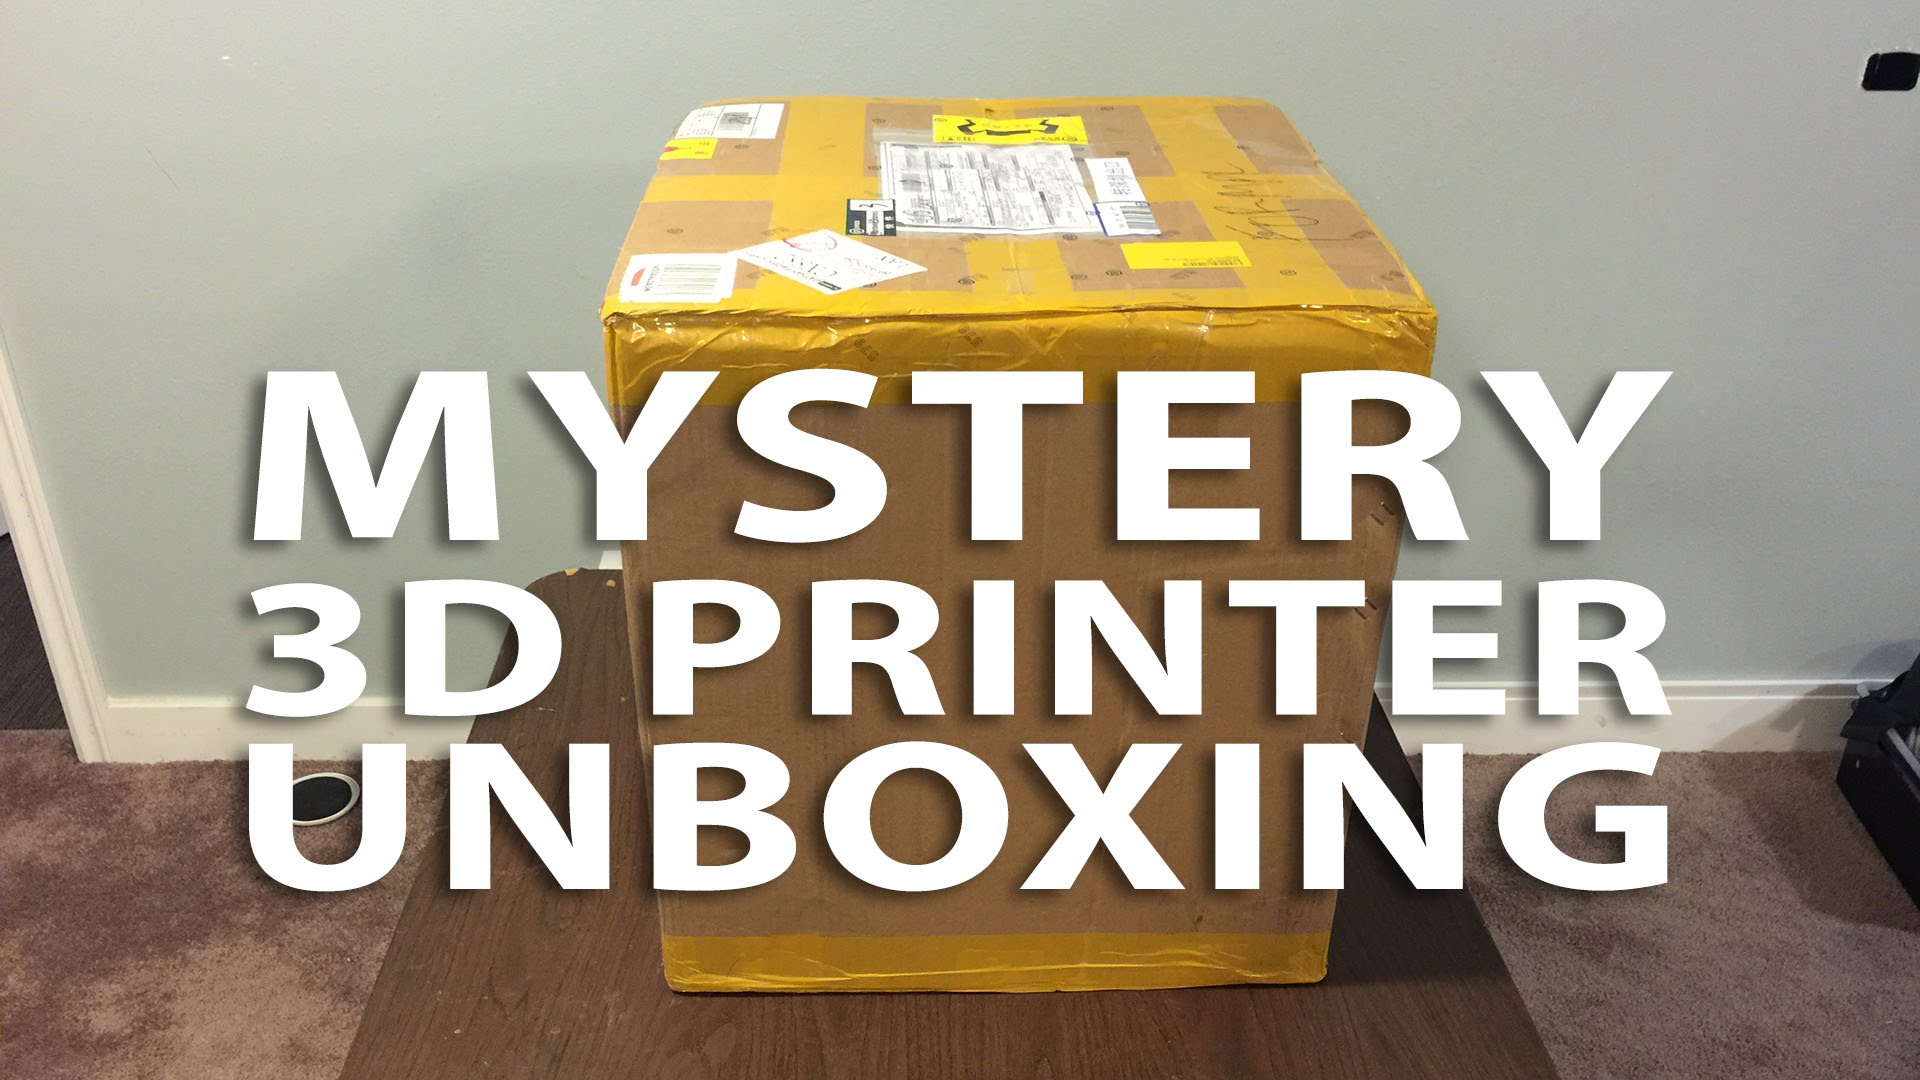 BEHIND THE SCENES: Unboxing the Mystery 3D Printer!